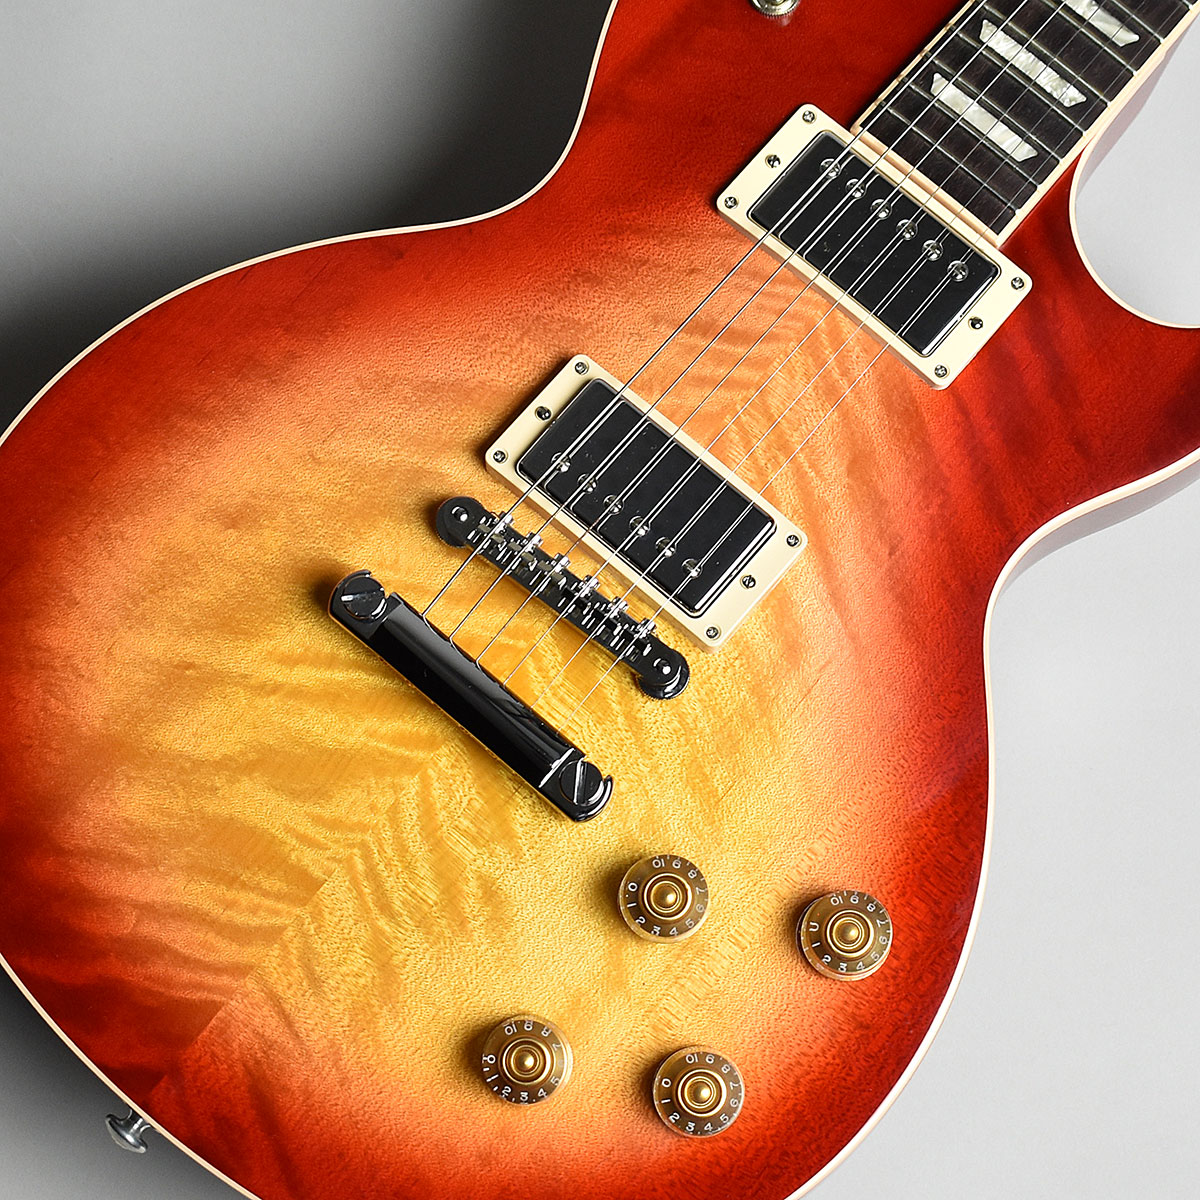 Gibson Les Paul Traditional Pro Plus 2017 Limited Heritage Cherry Sunburst S/N:170068930 レスポールトラディショナル 【ギブソン】【未展示品】